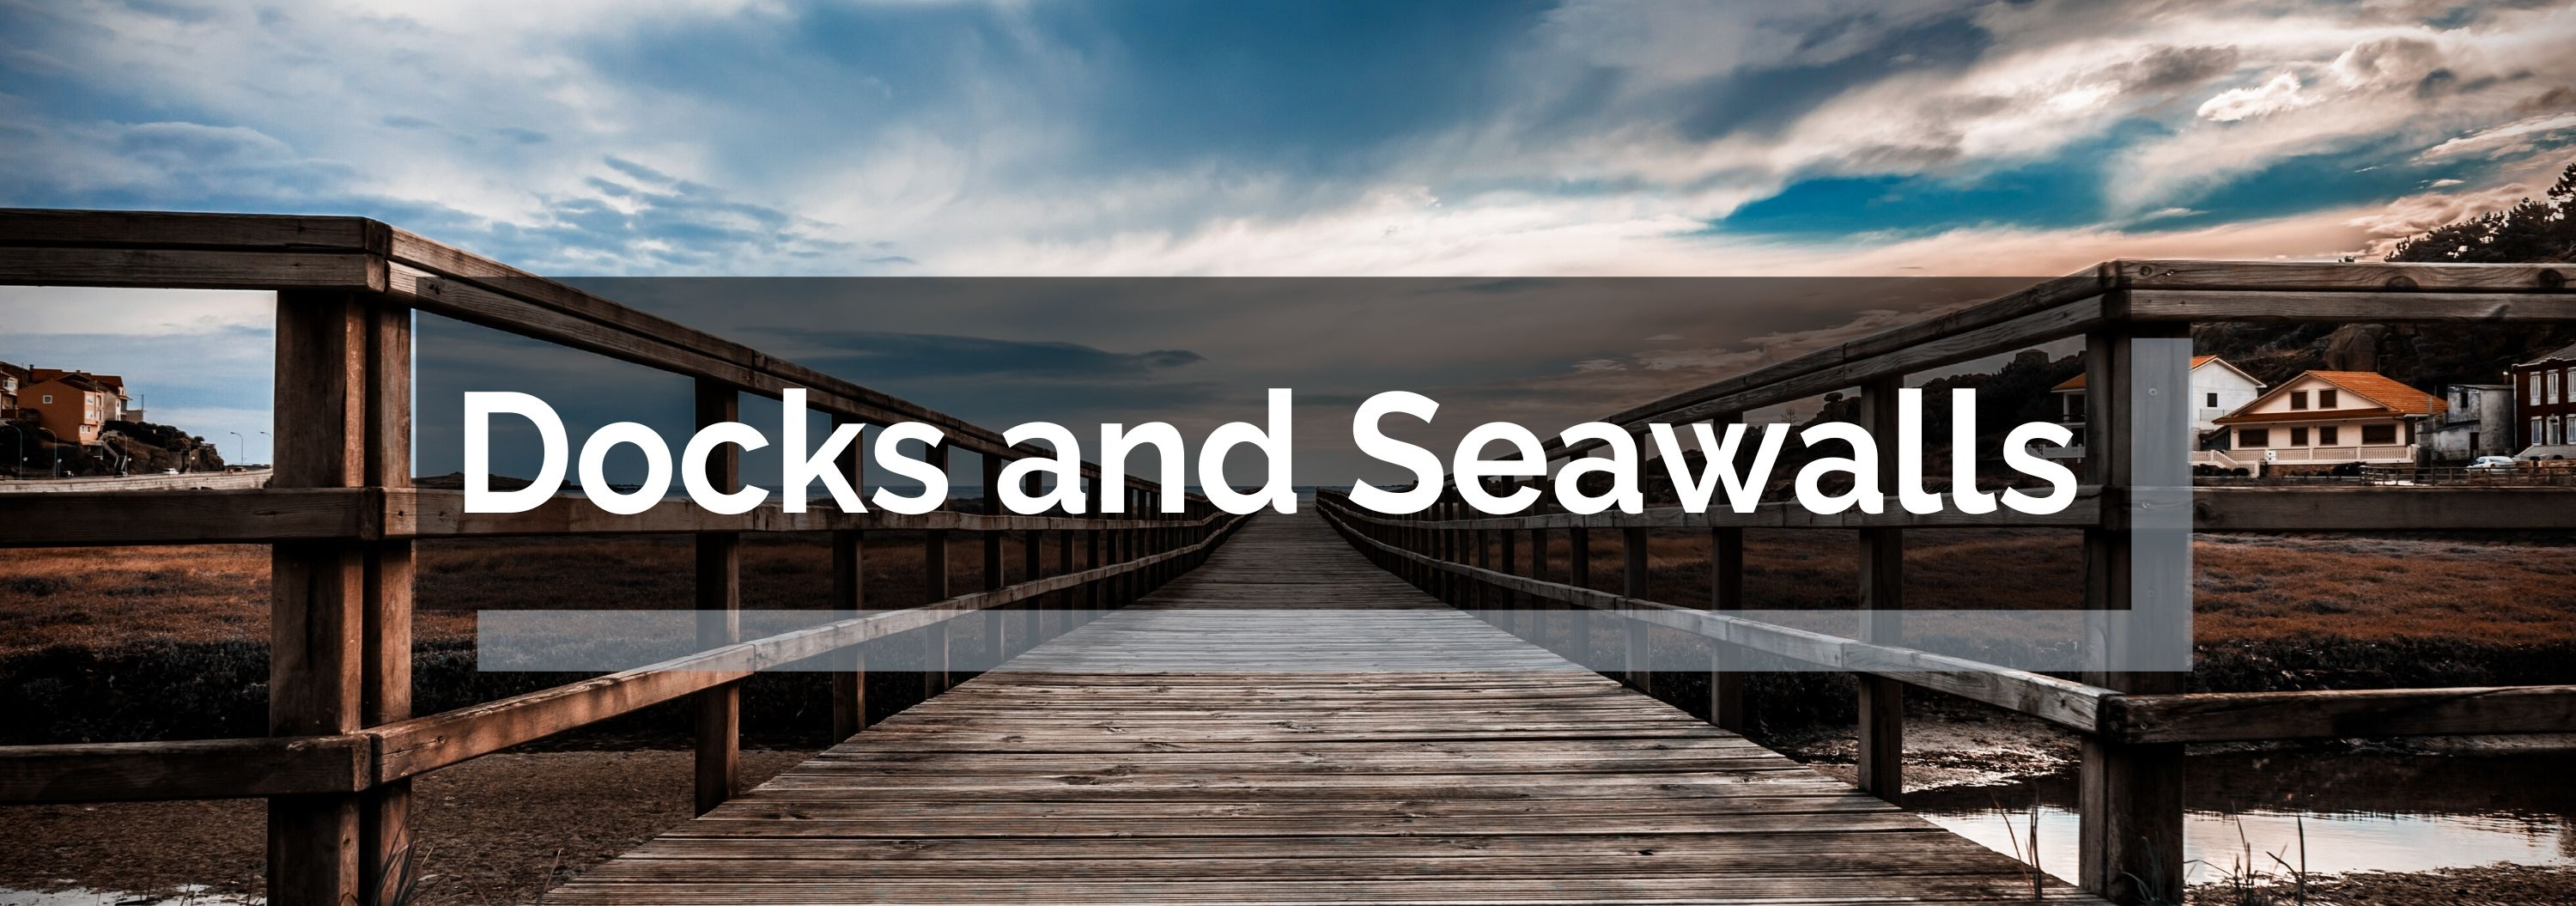 Docks and Seawalls Banner